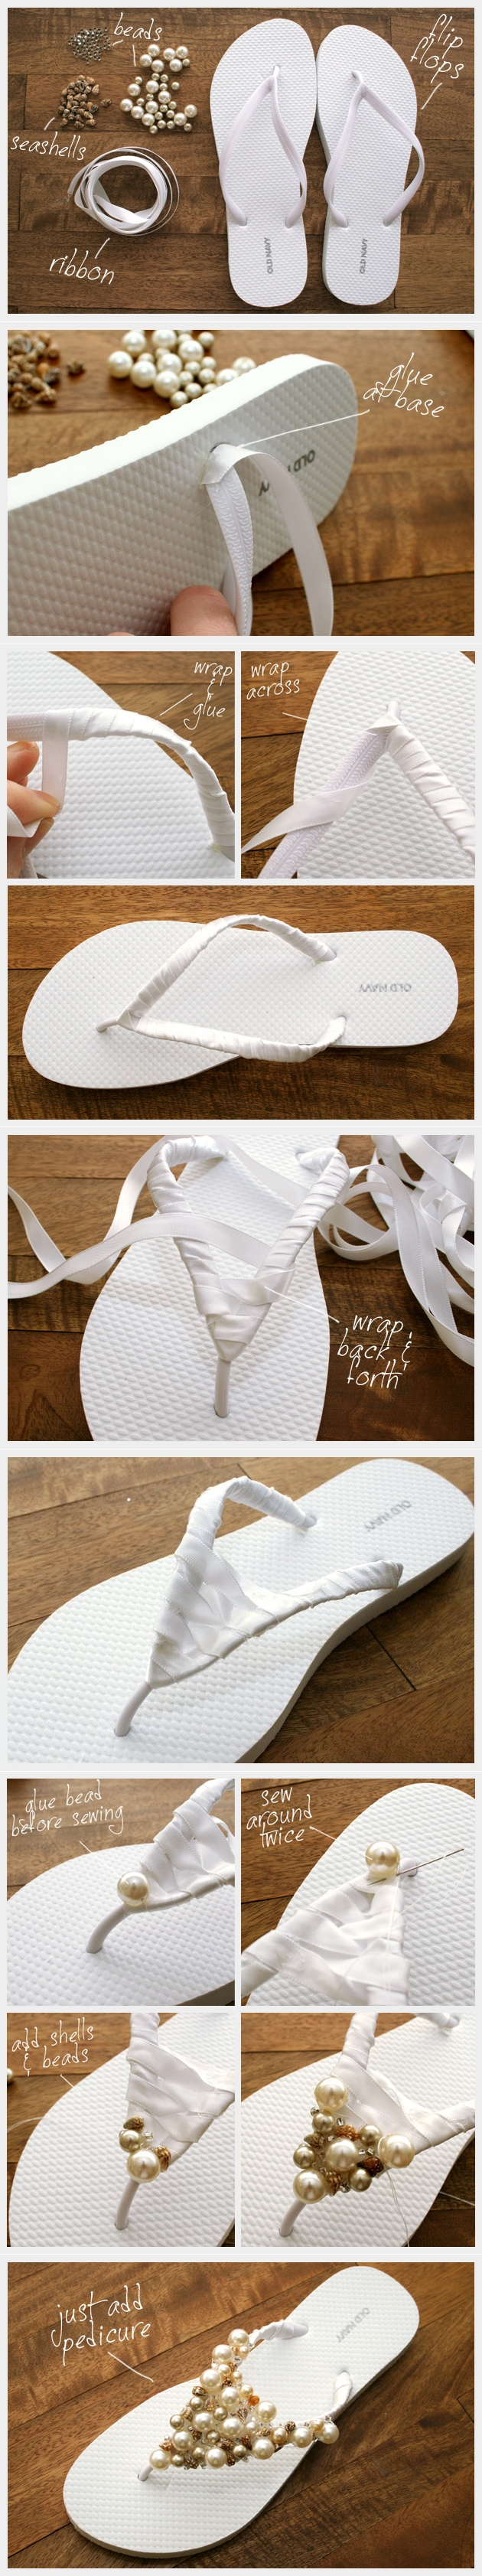 flipflop with pearls tutorial